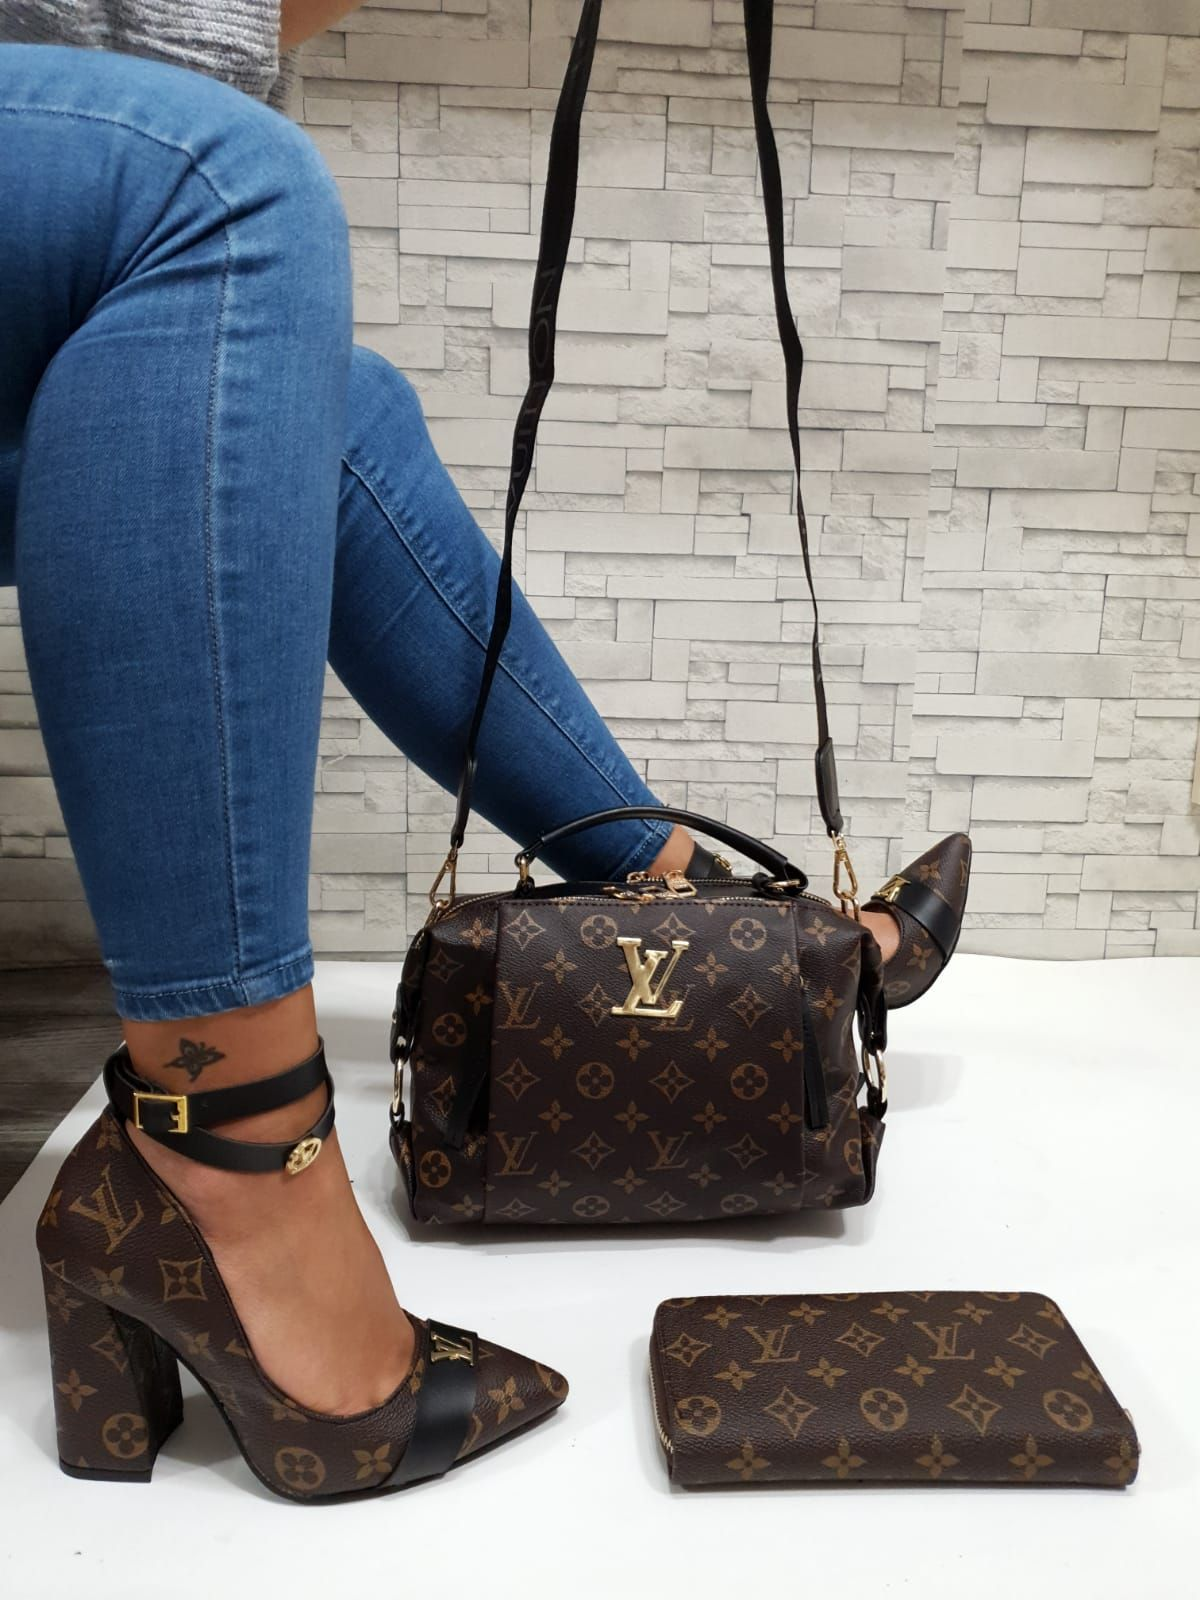 Lv new brown set